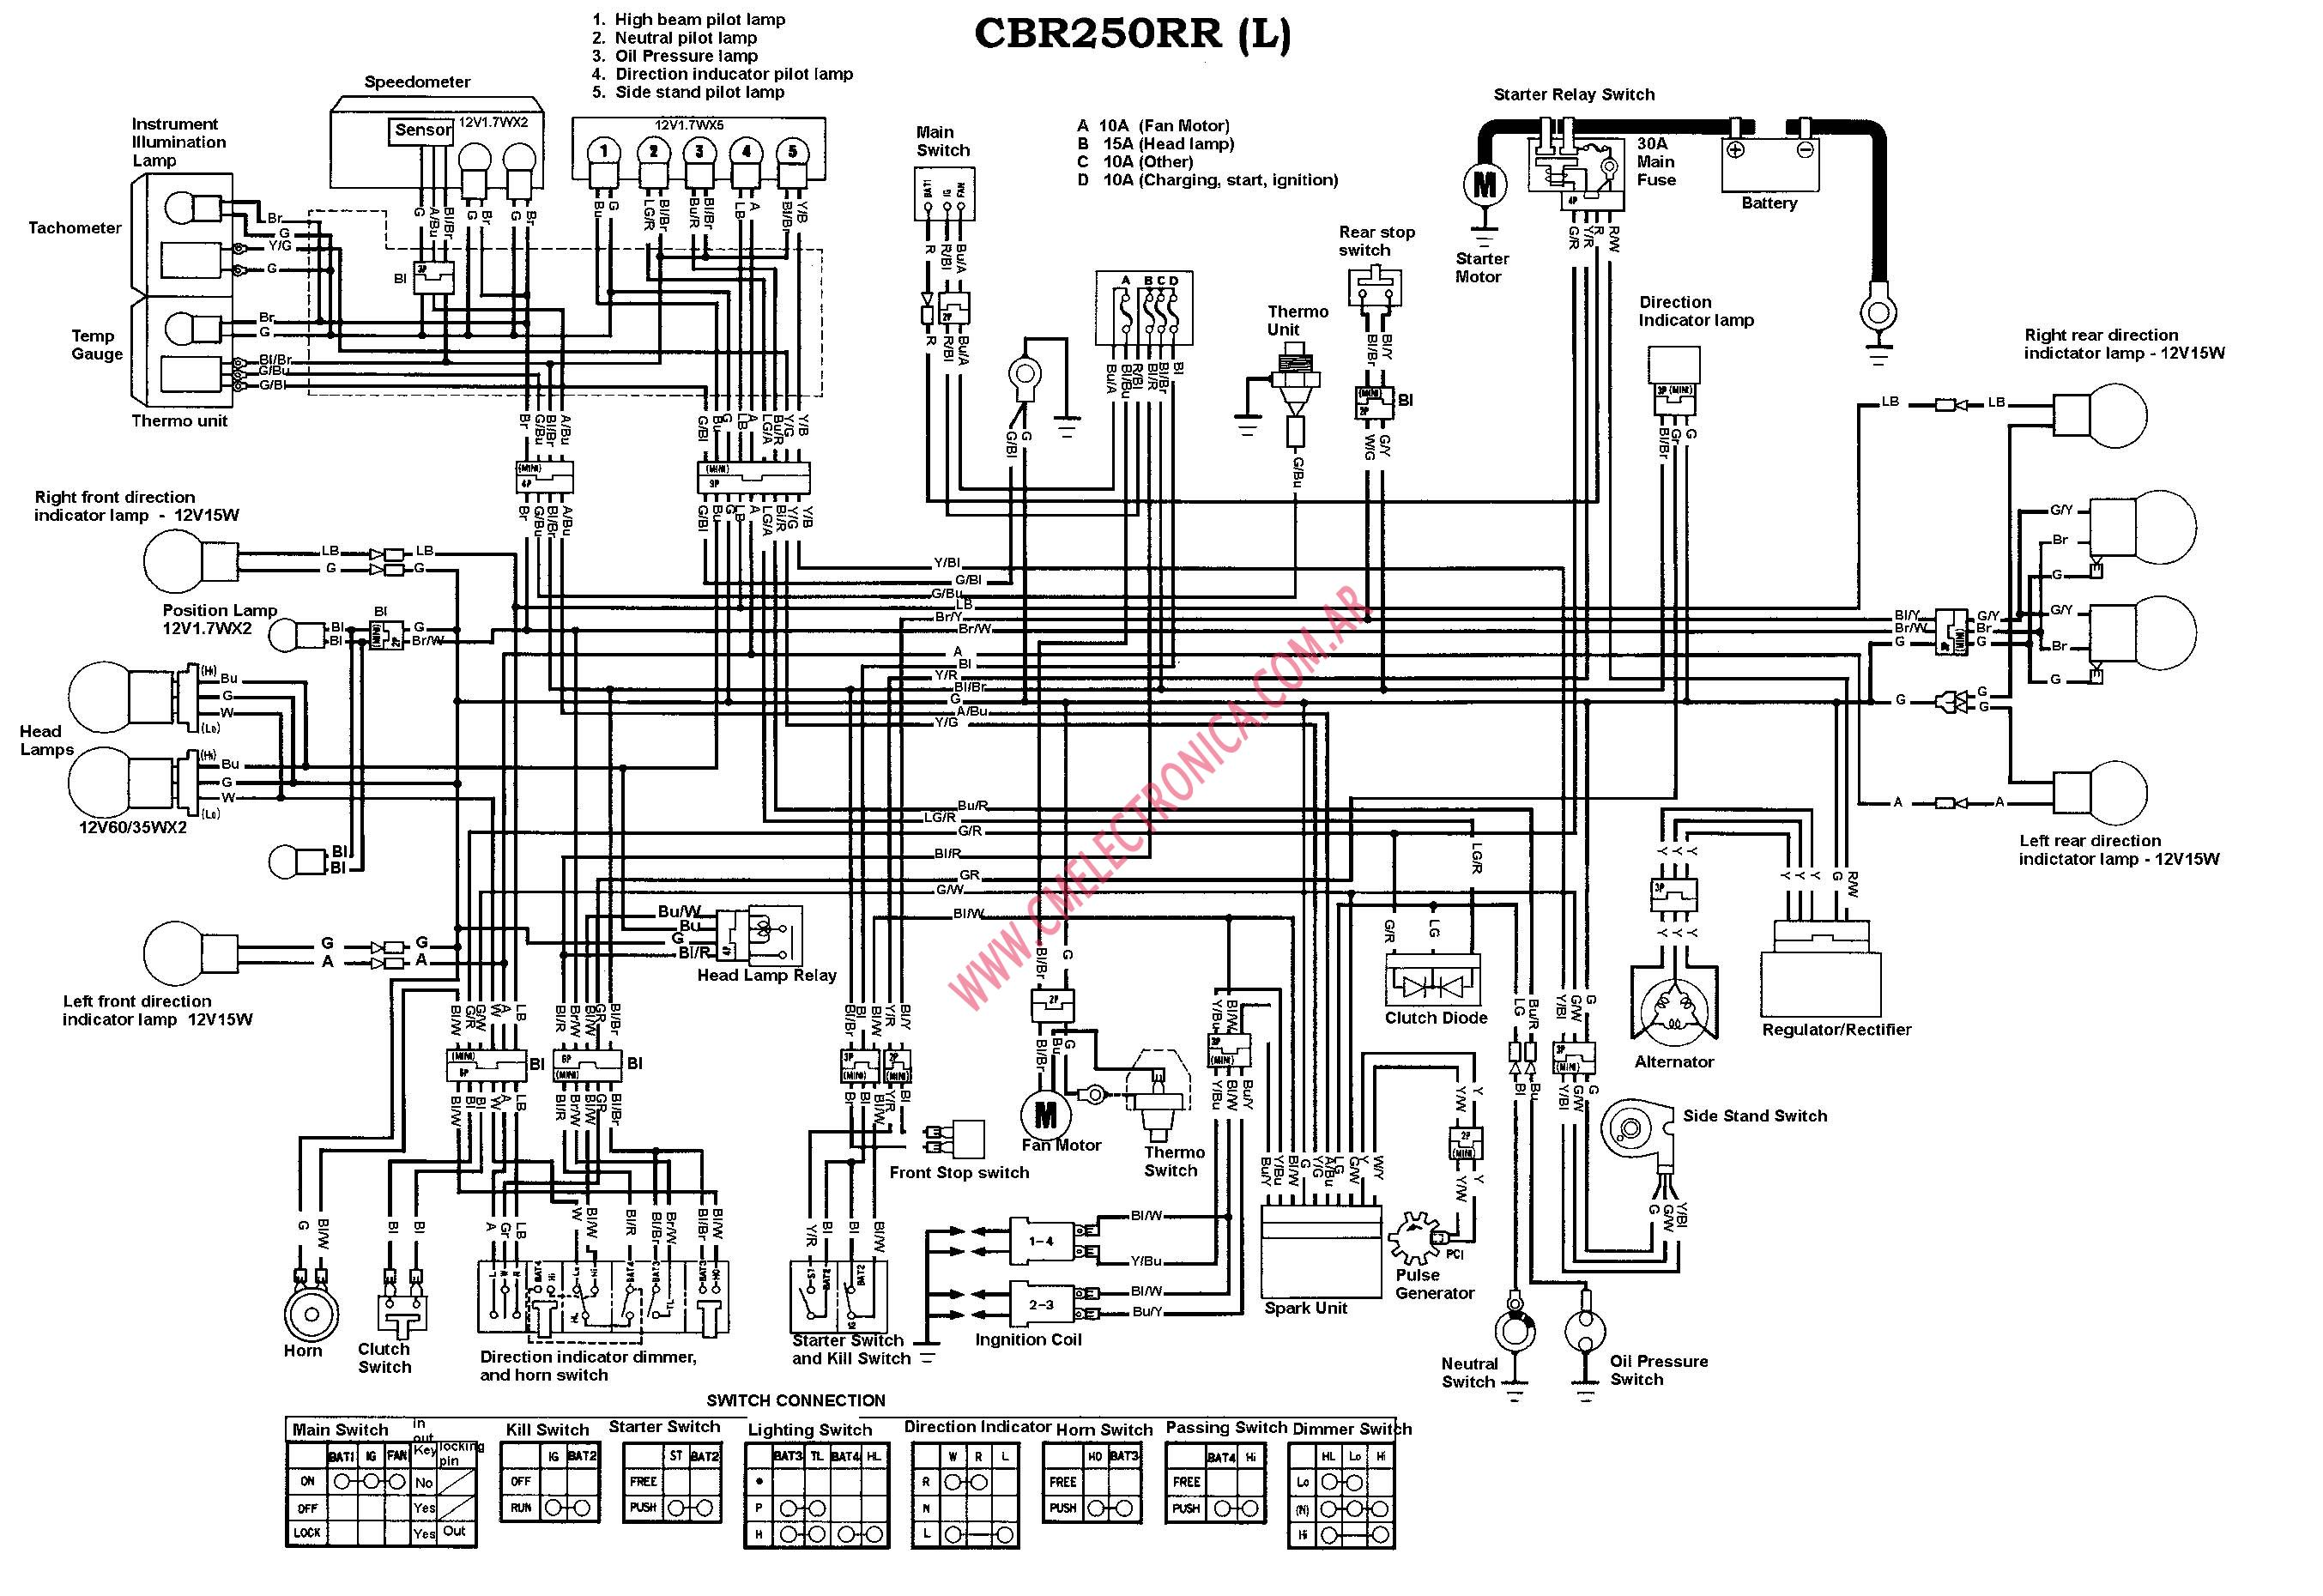 Cbr250r Wiring Diagram